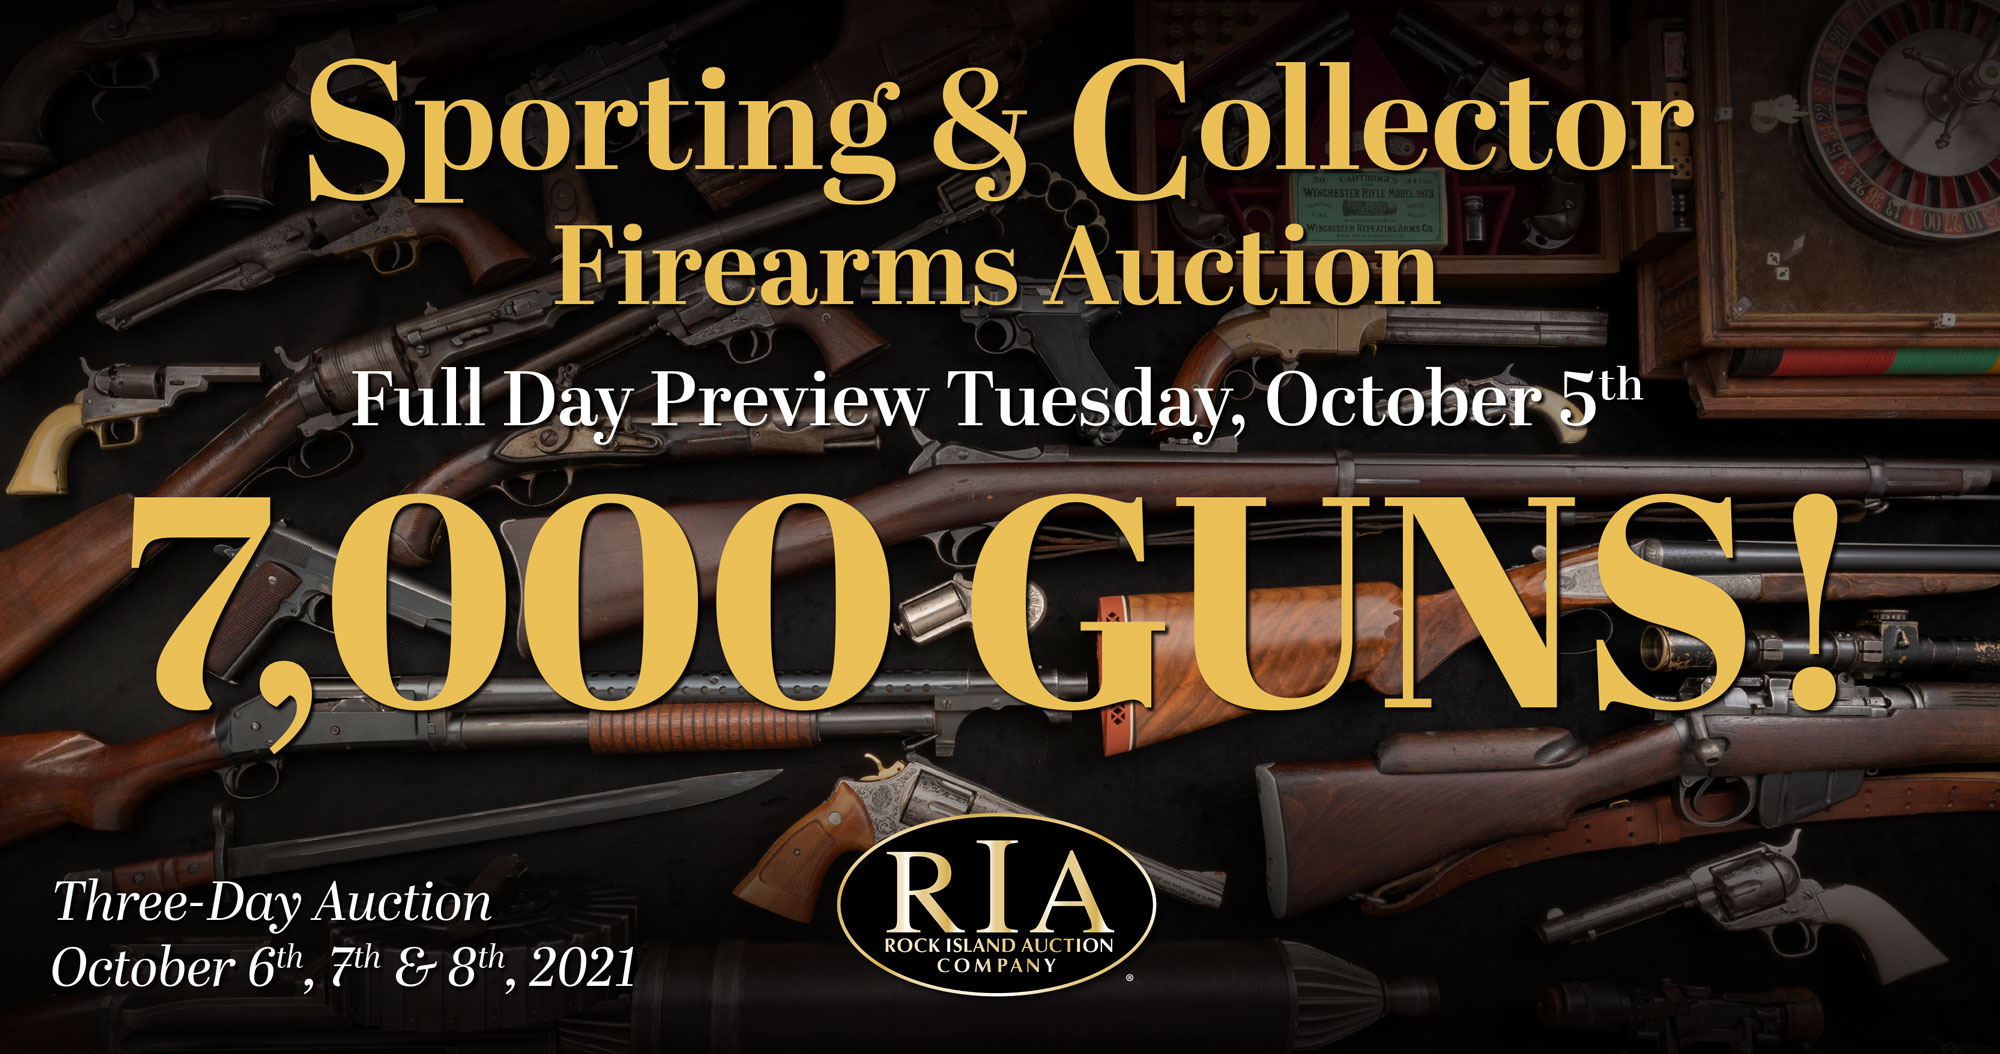 October S&P Firearms Auction